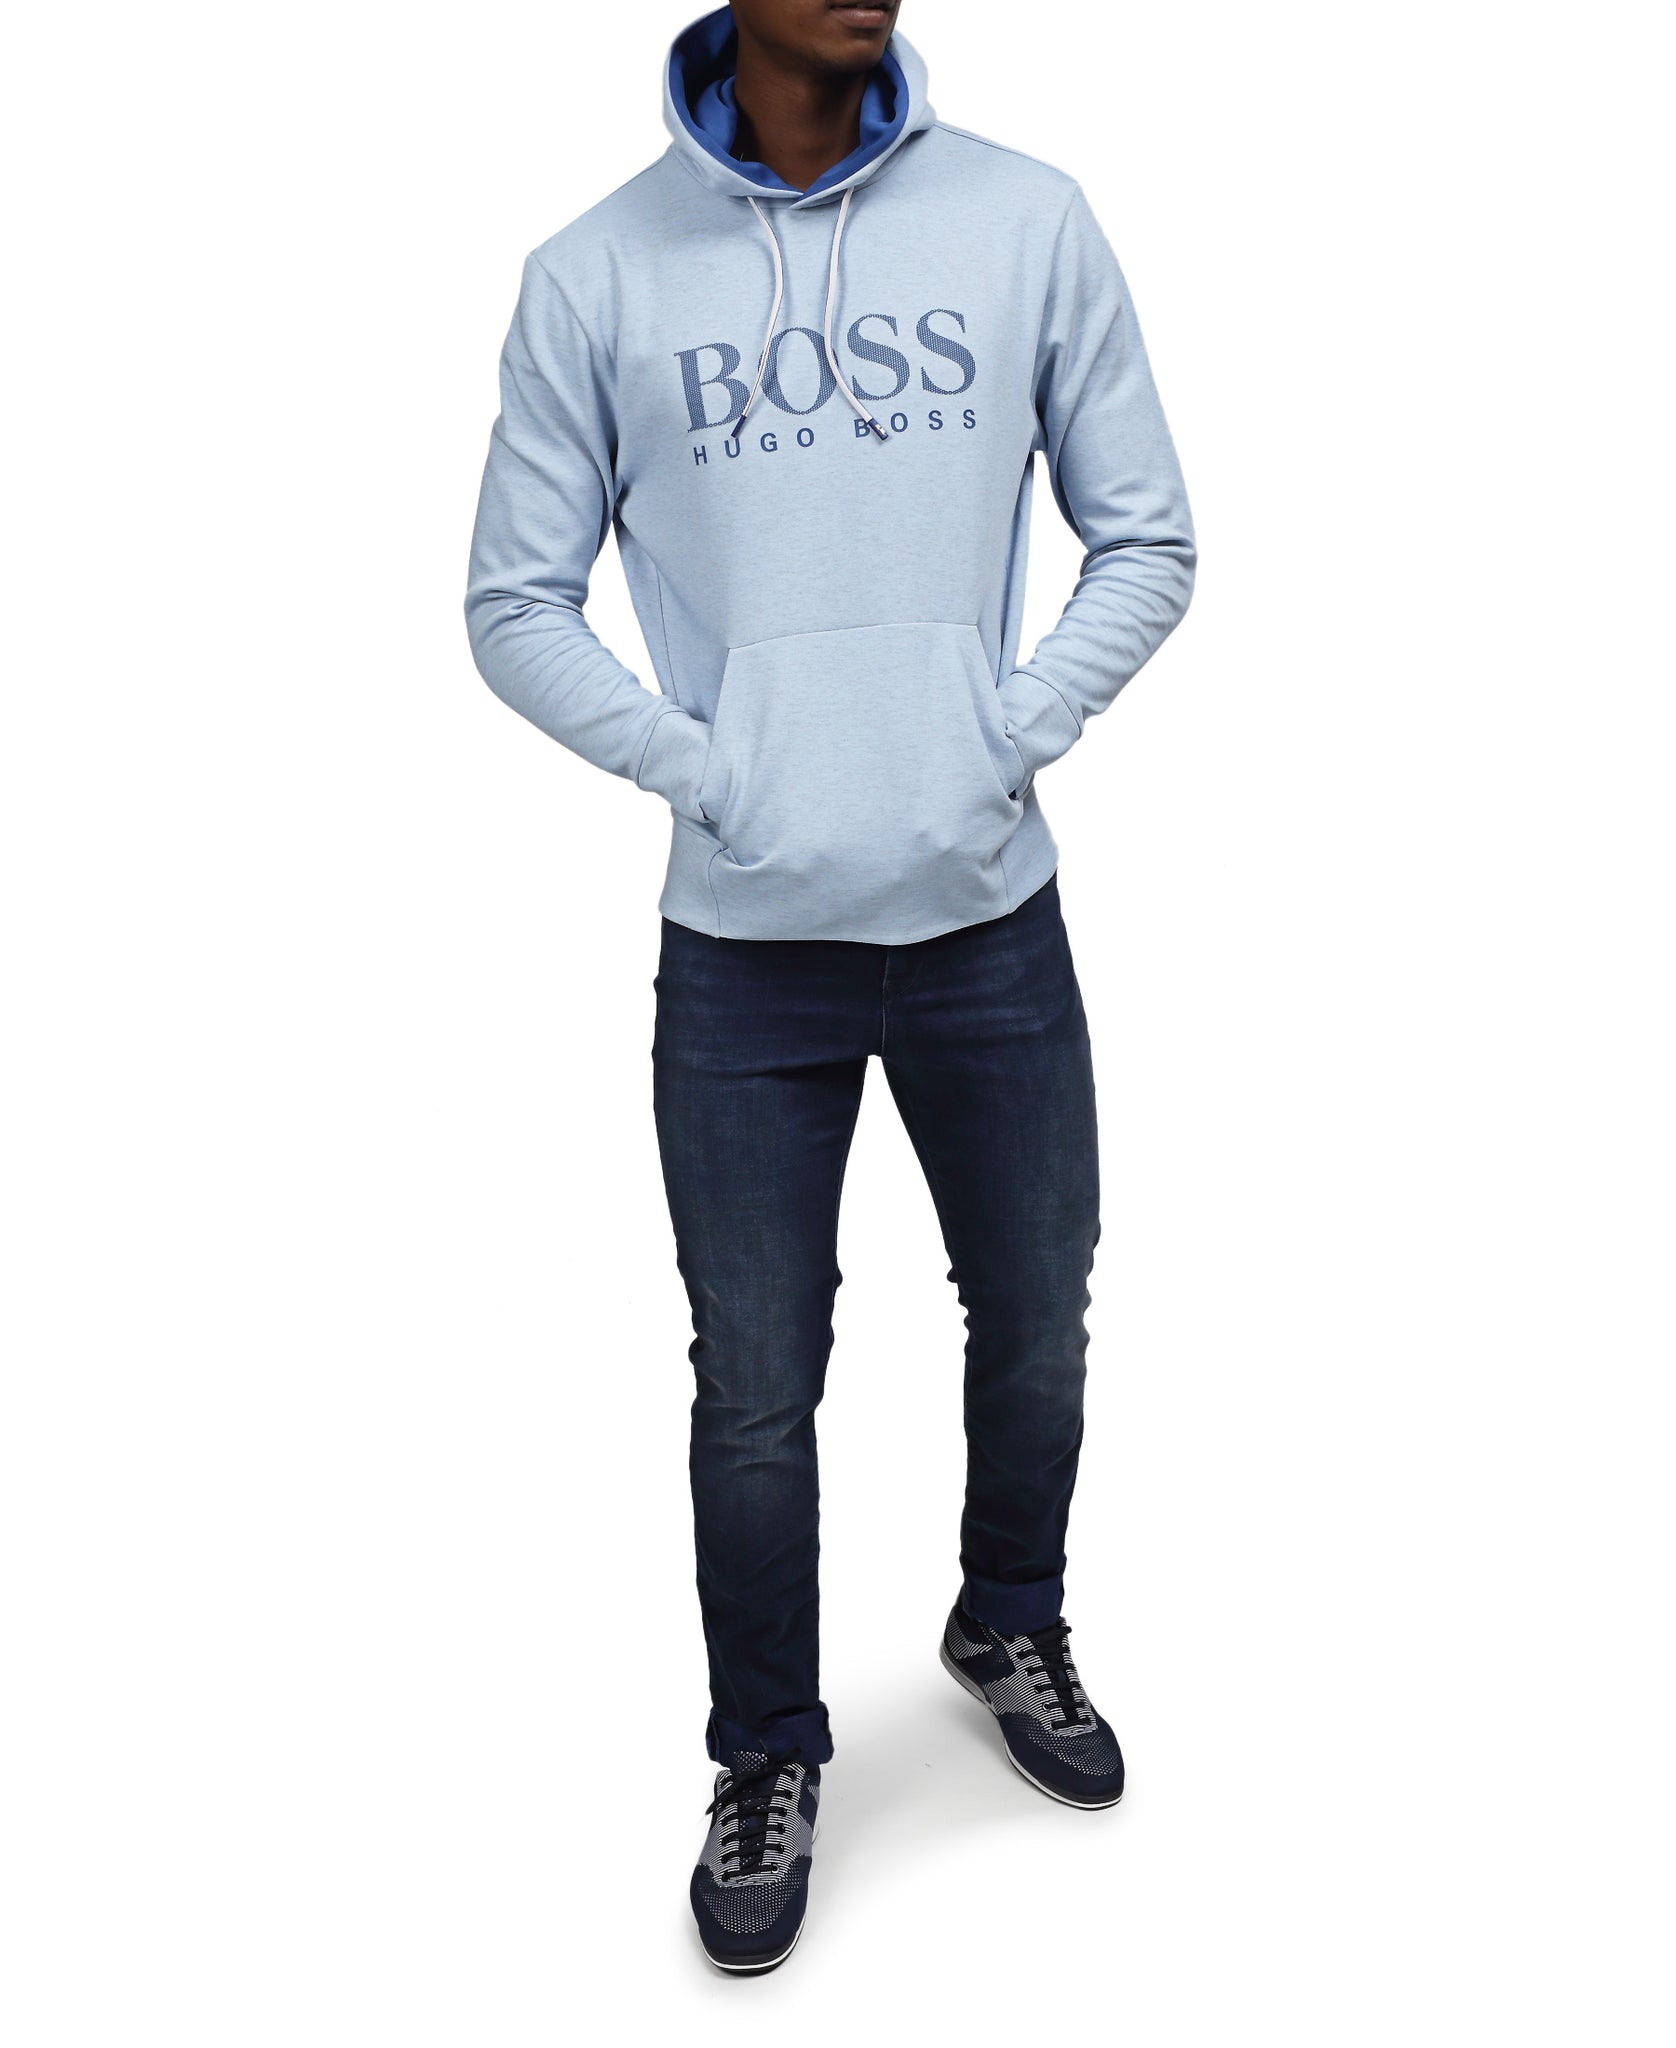 Comfort Fit Hugo Boss Sweatshirt - Blue